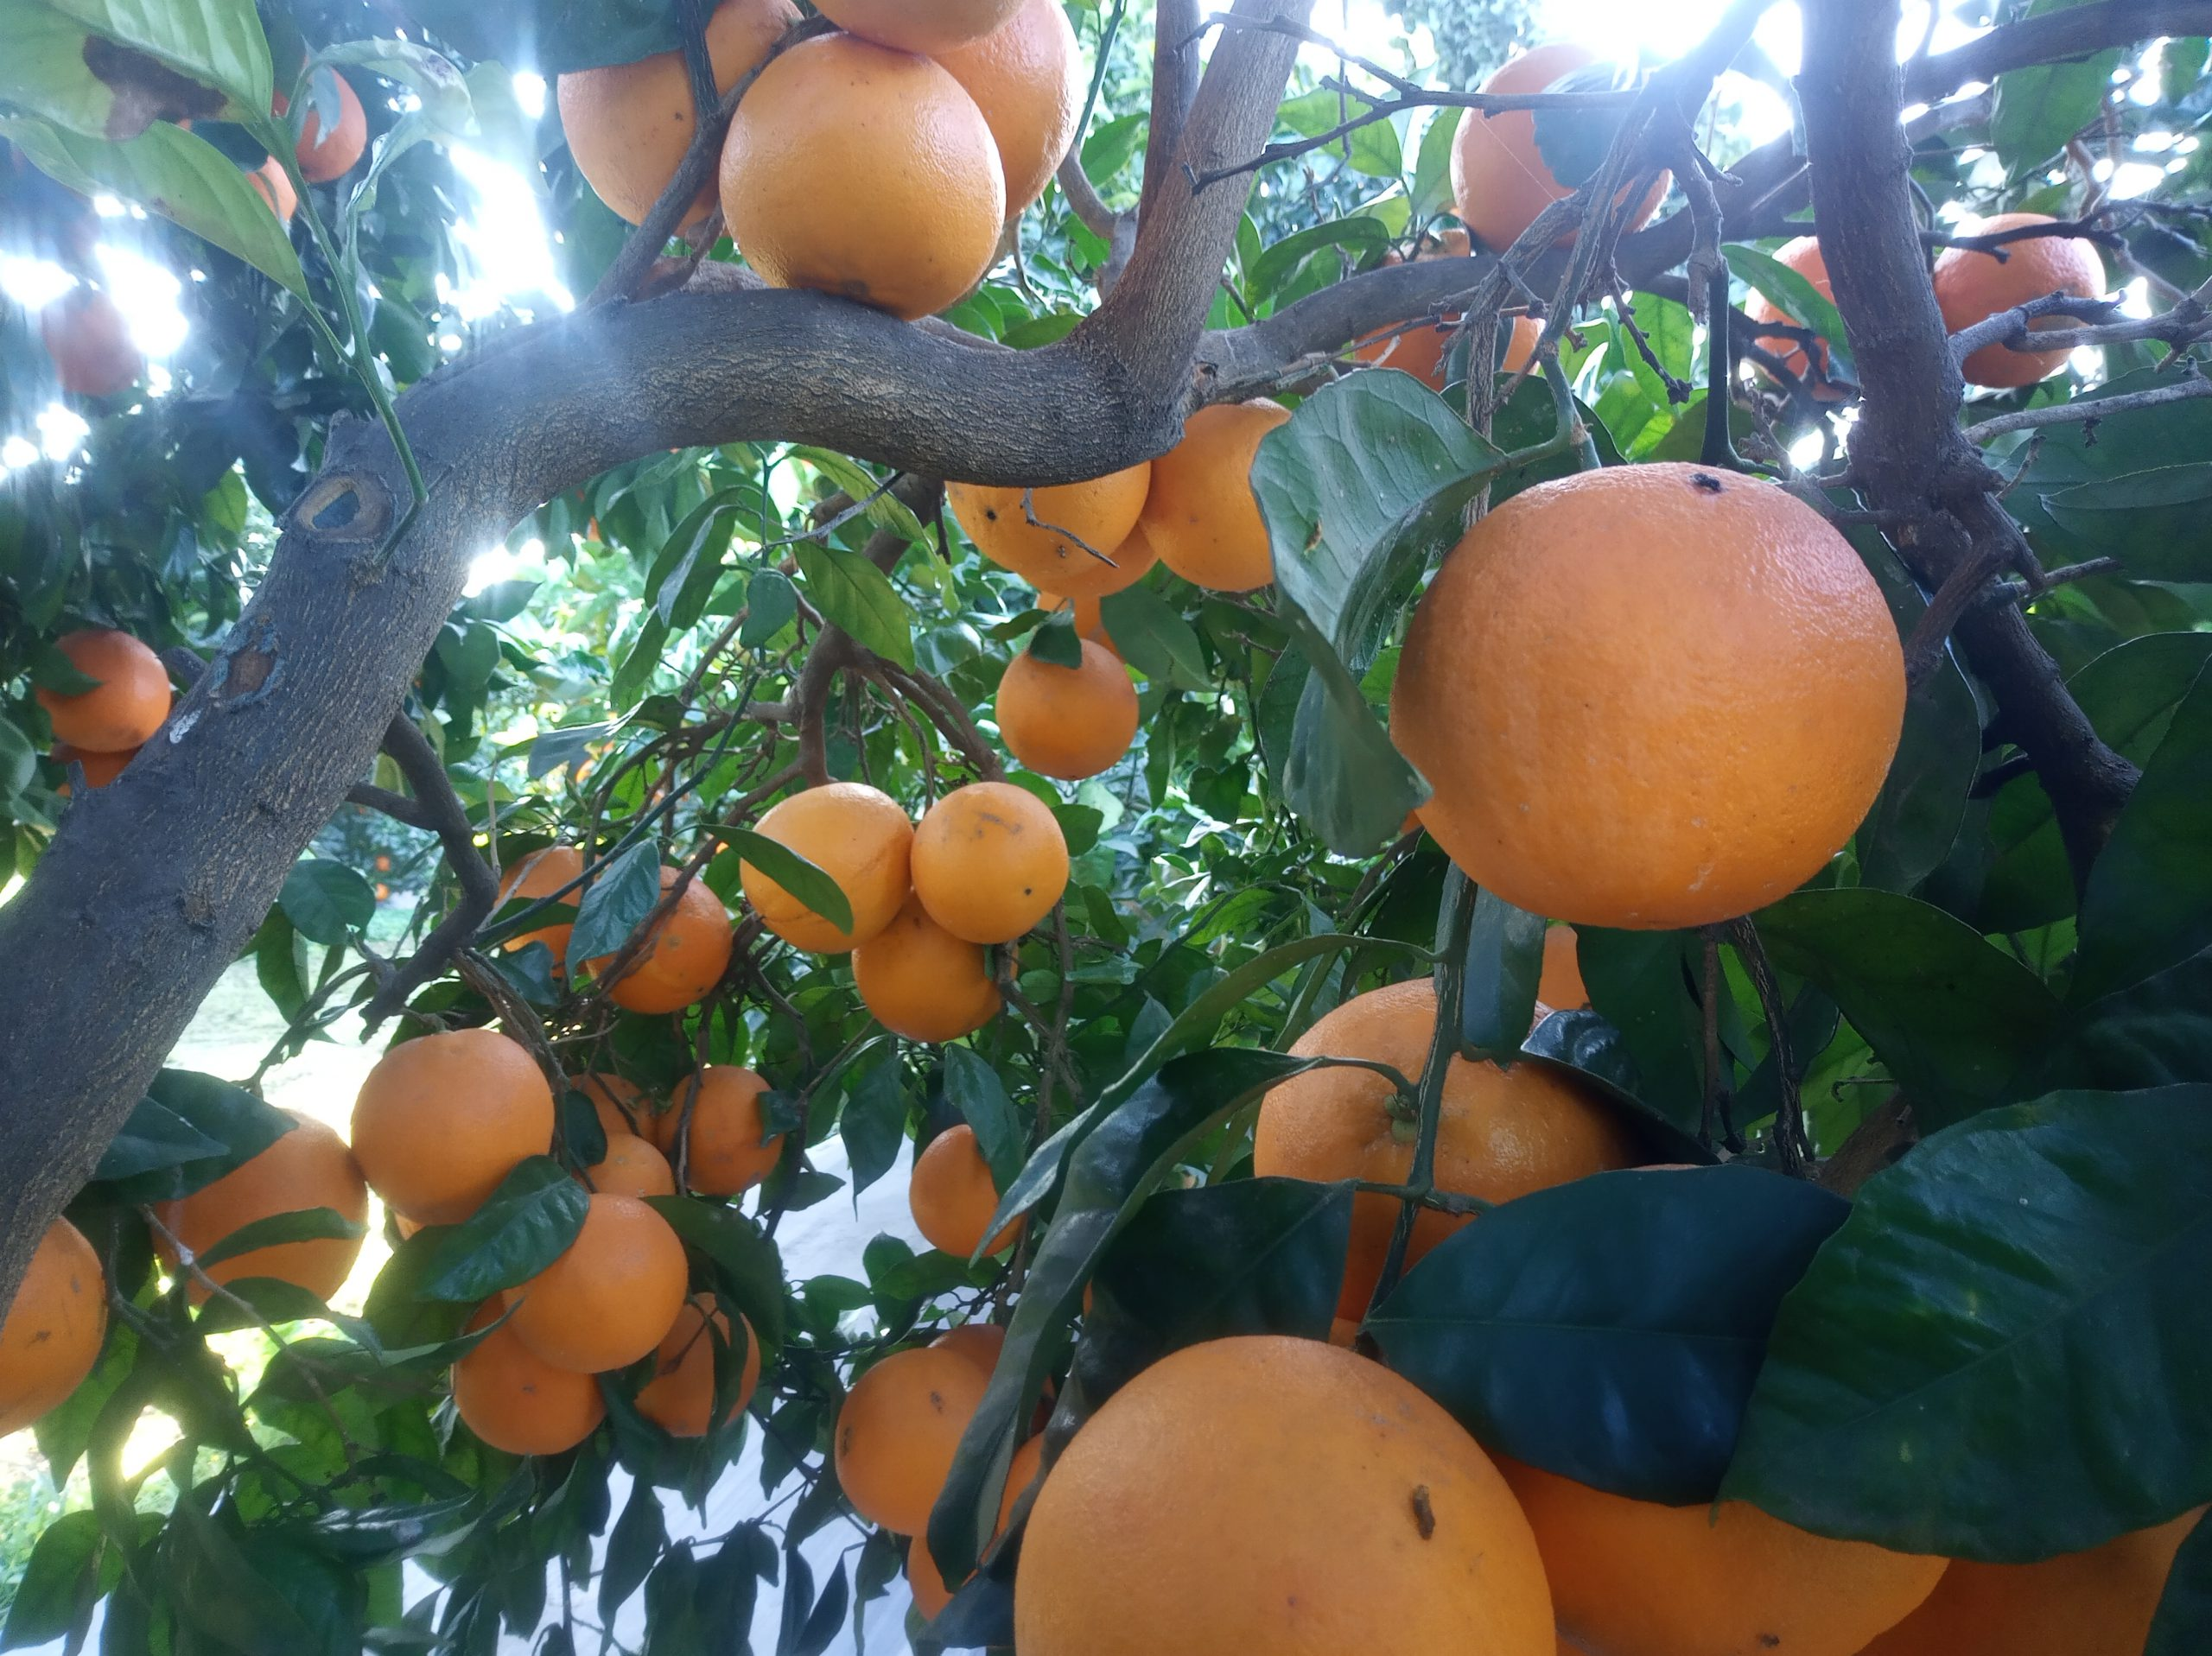 Navel oranges hanging from a tree